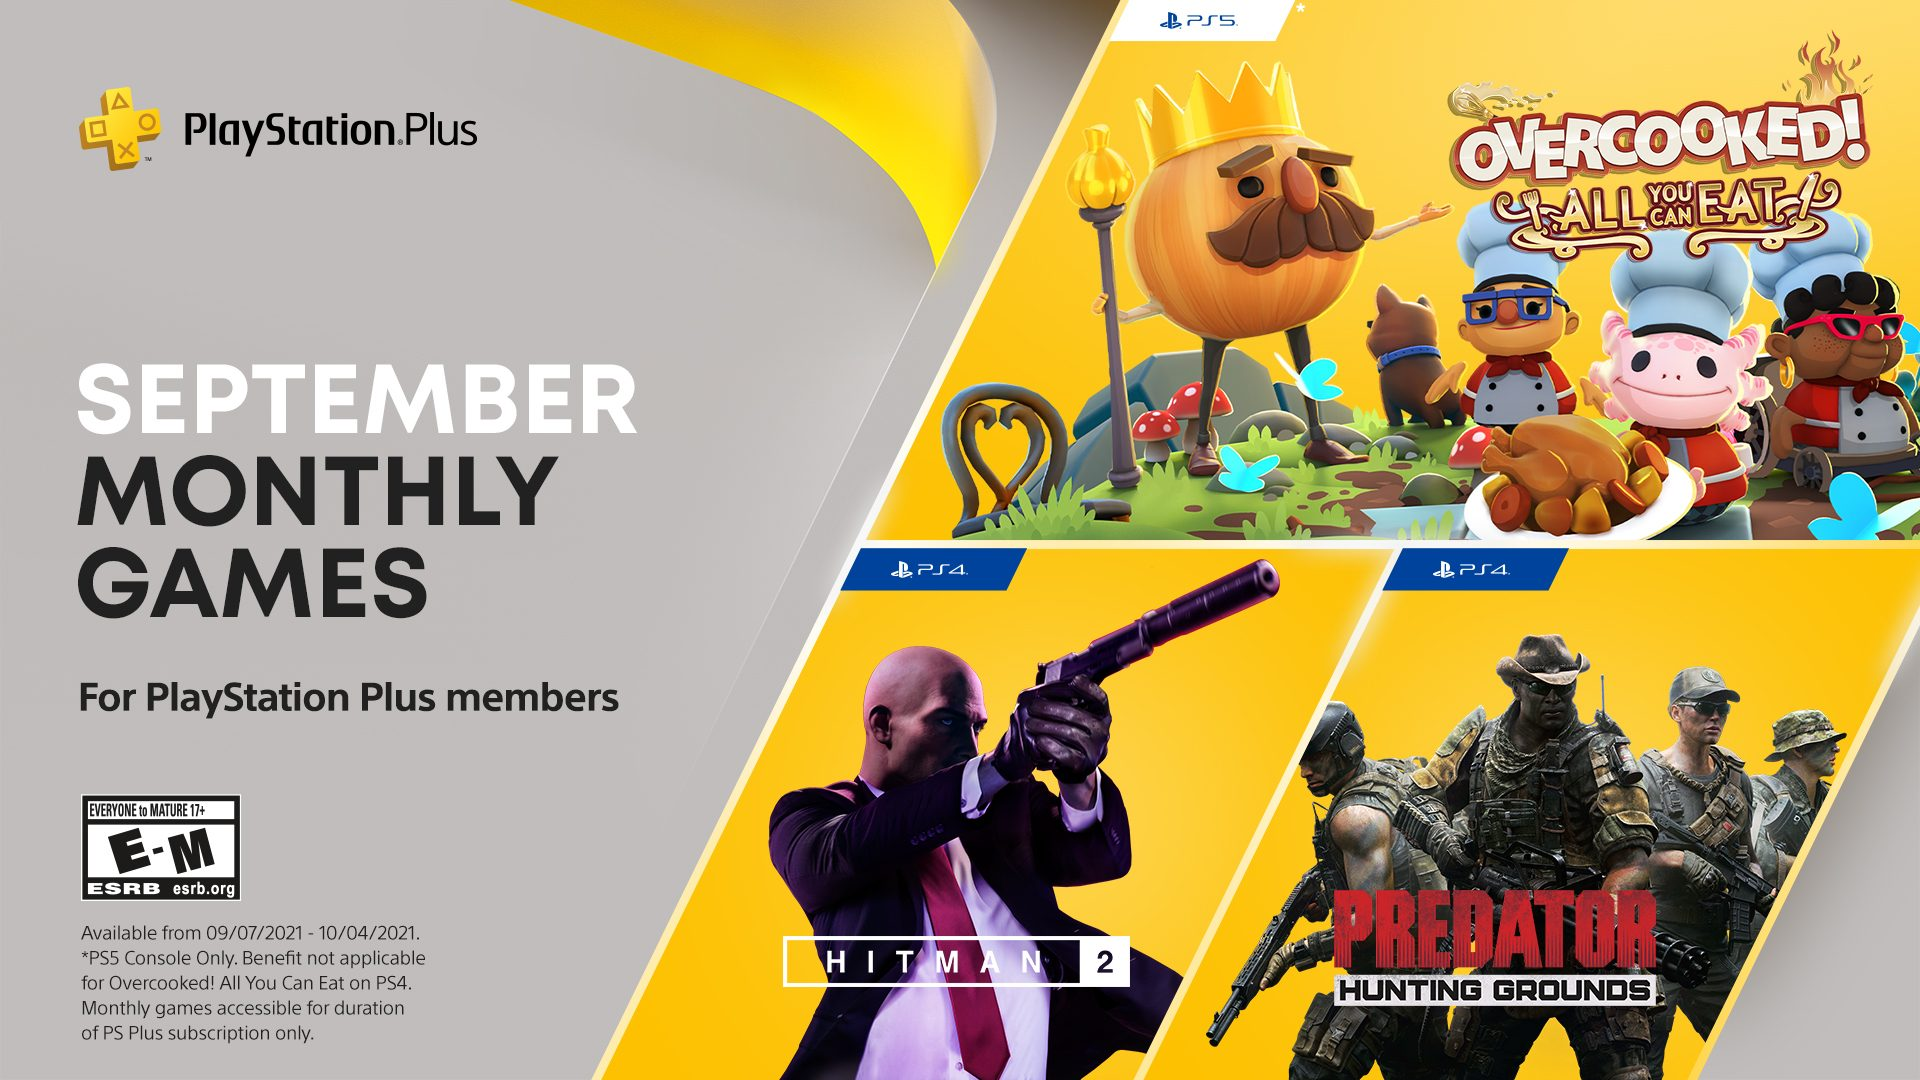 playstation-furthermore-games-for-september:-overcooked:-all-you-can-consume!,-hitman-2,-predator:-searching-grounds